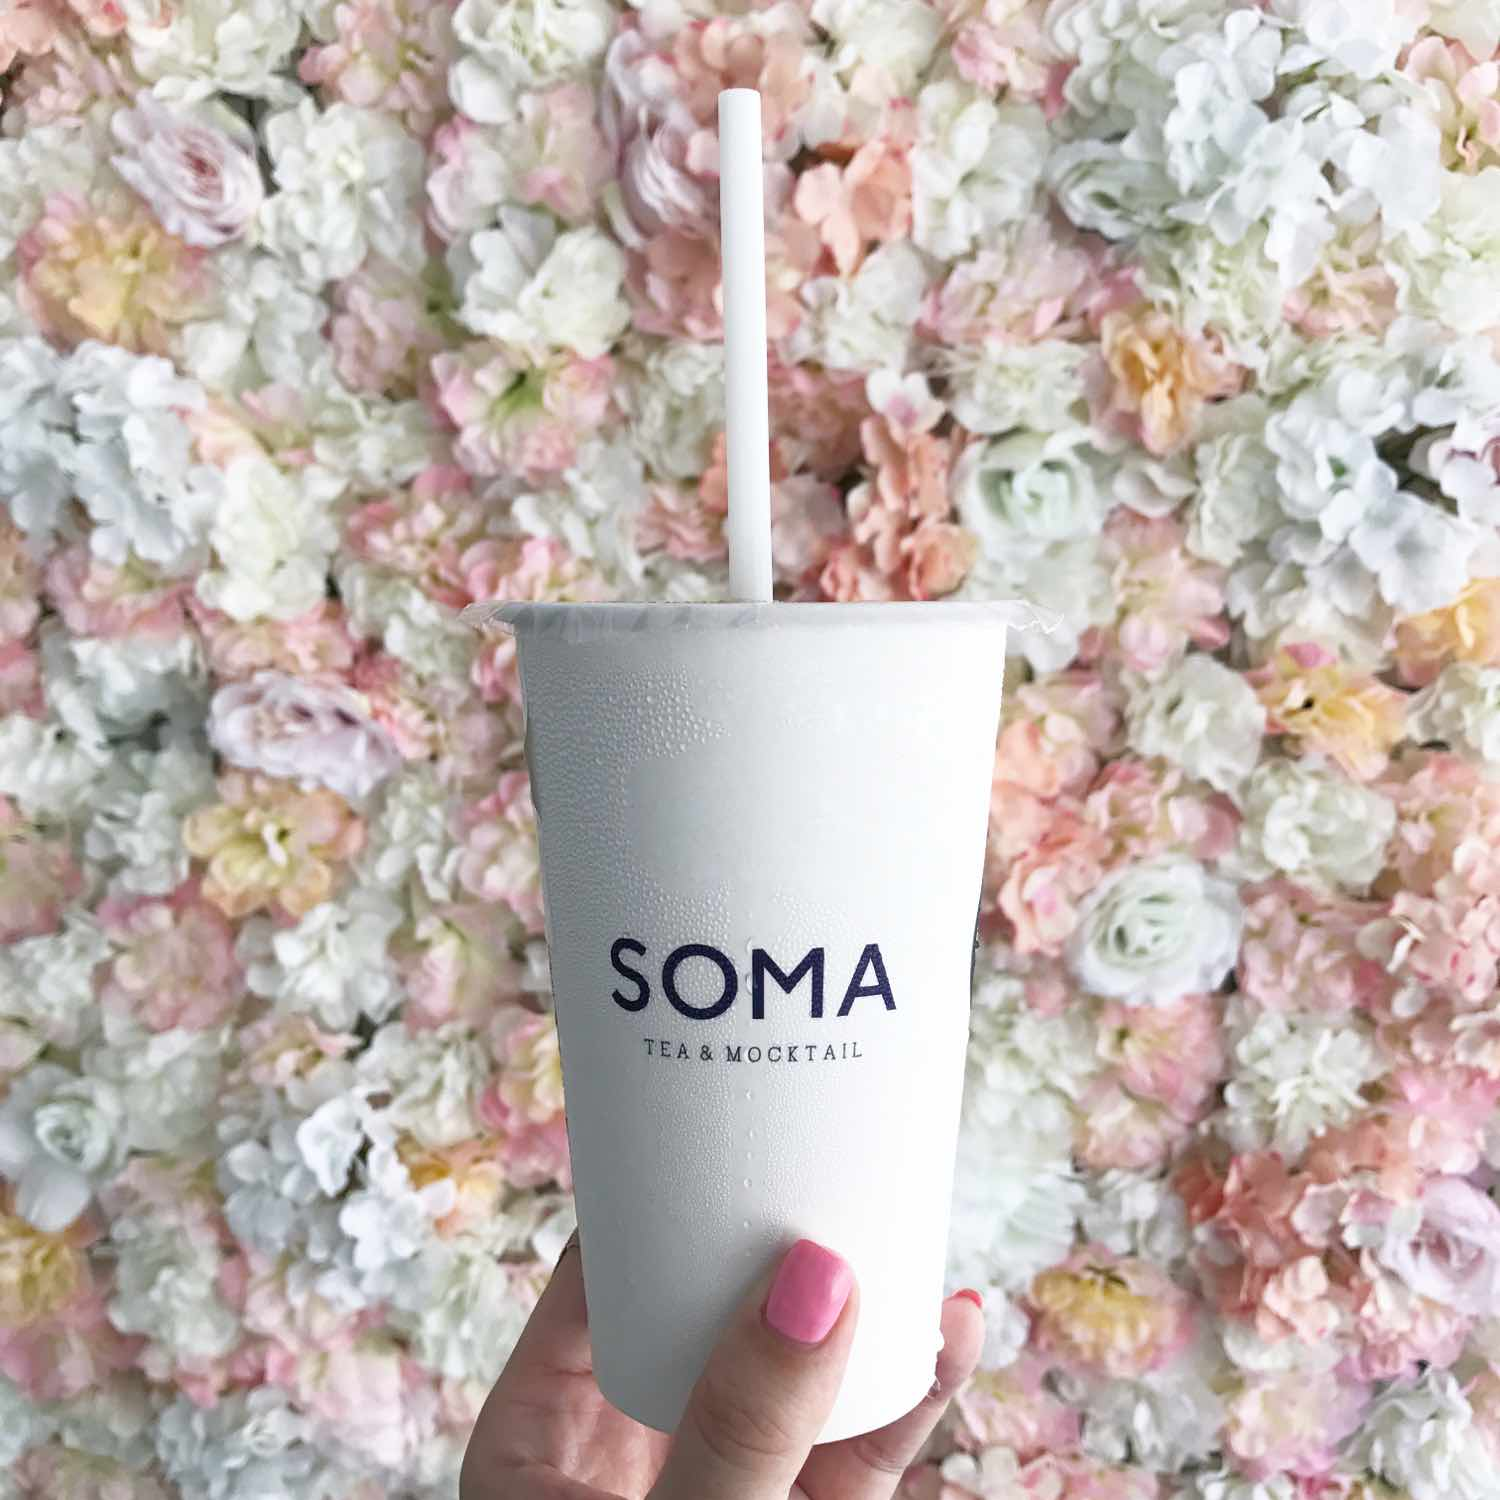 soma milk tea in taipei